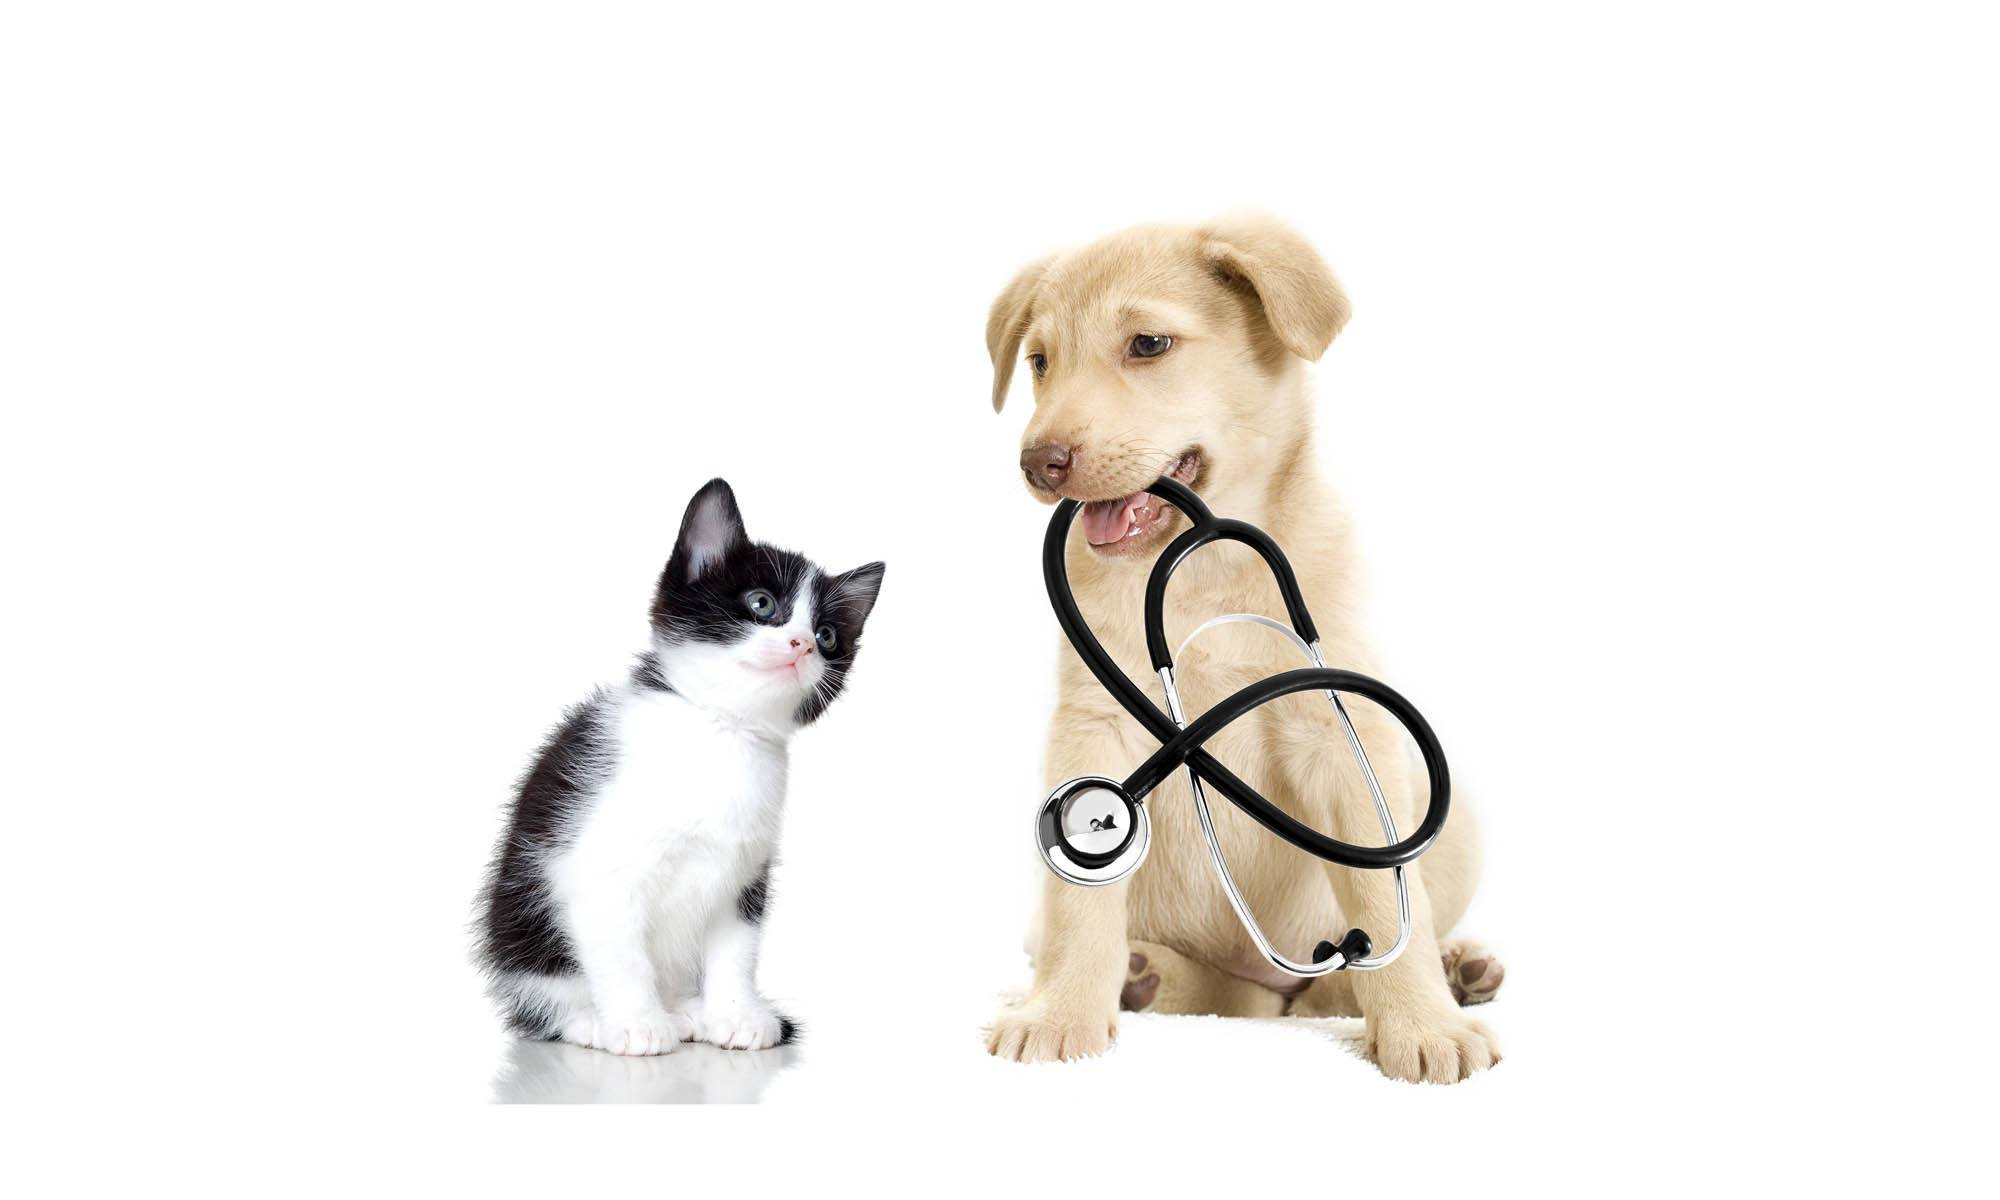 Animal hospital in Lake Havasu City, AZ